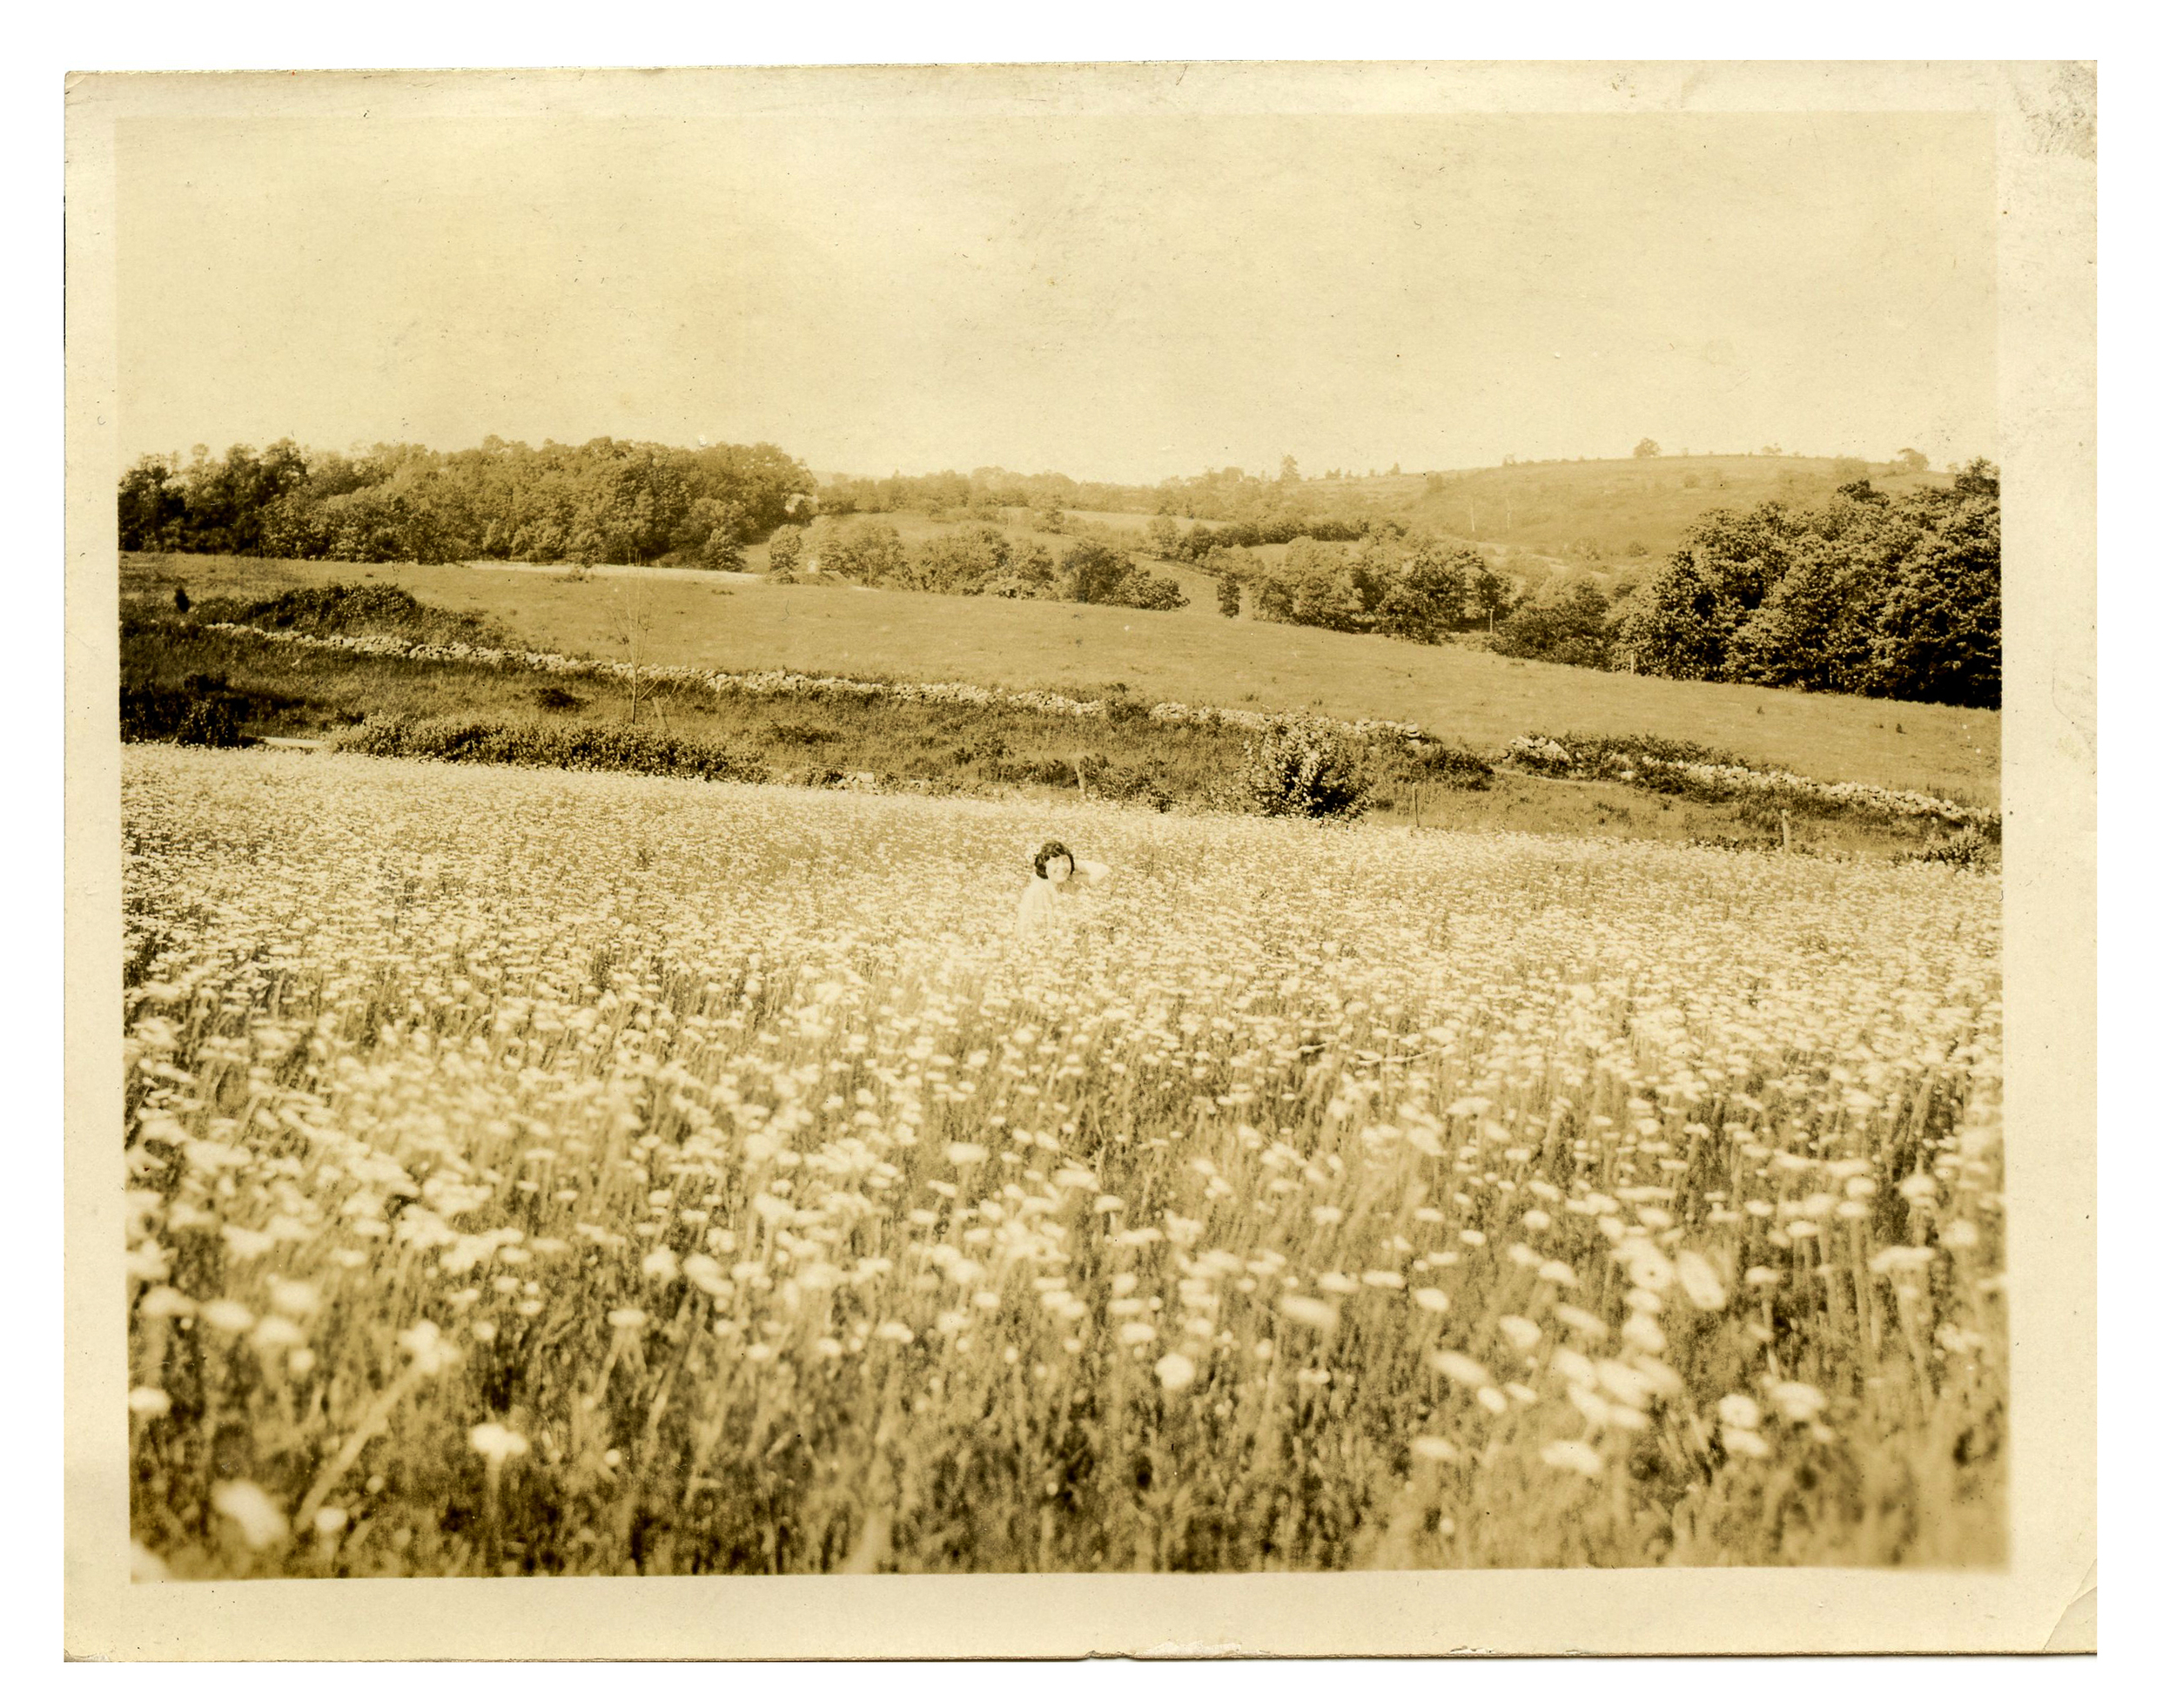 A woman immersed in a field of flowers, c. 1940.